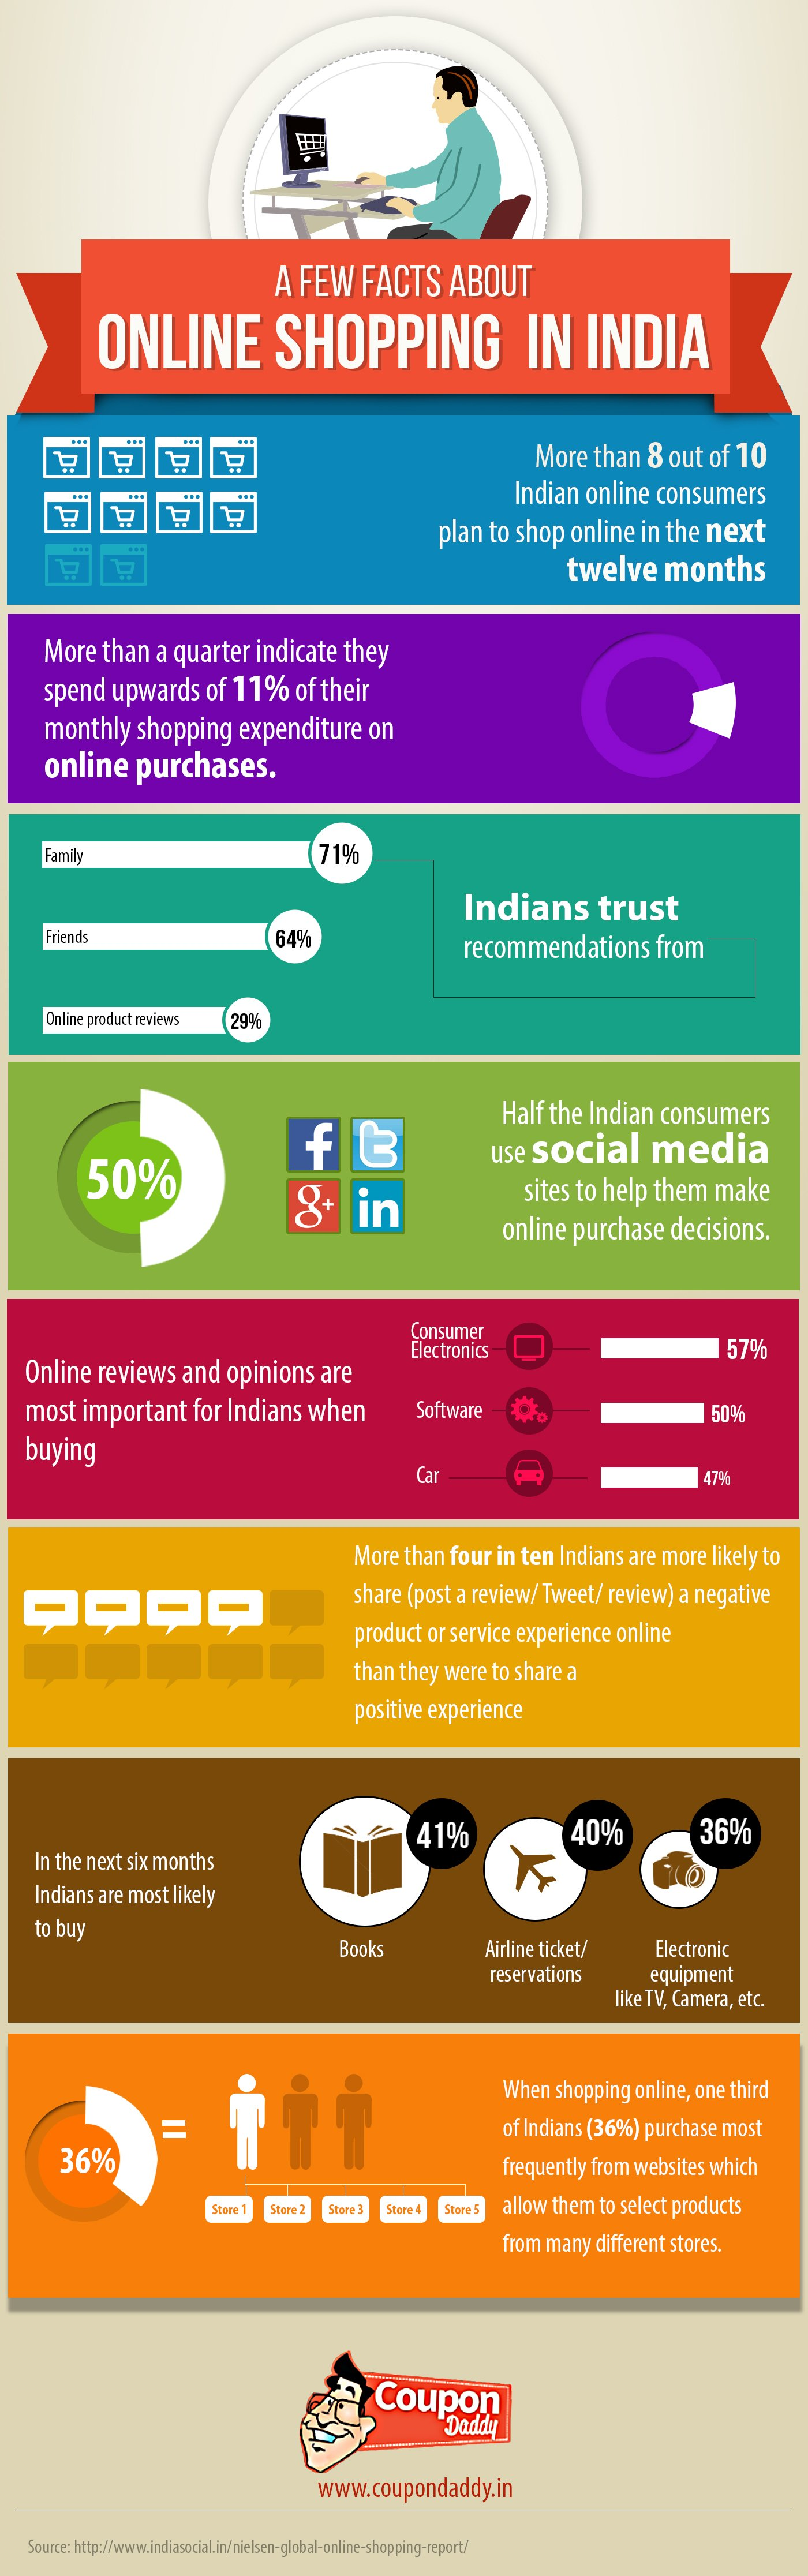 http://www.coupondaddy.in/online-shopping-india-brief-analysis-infographic/